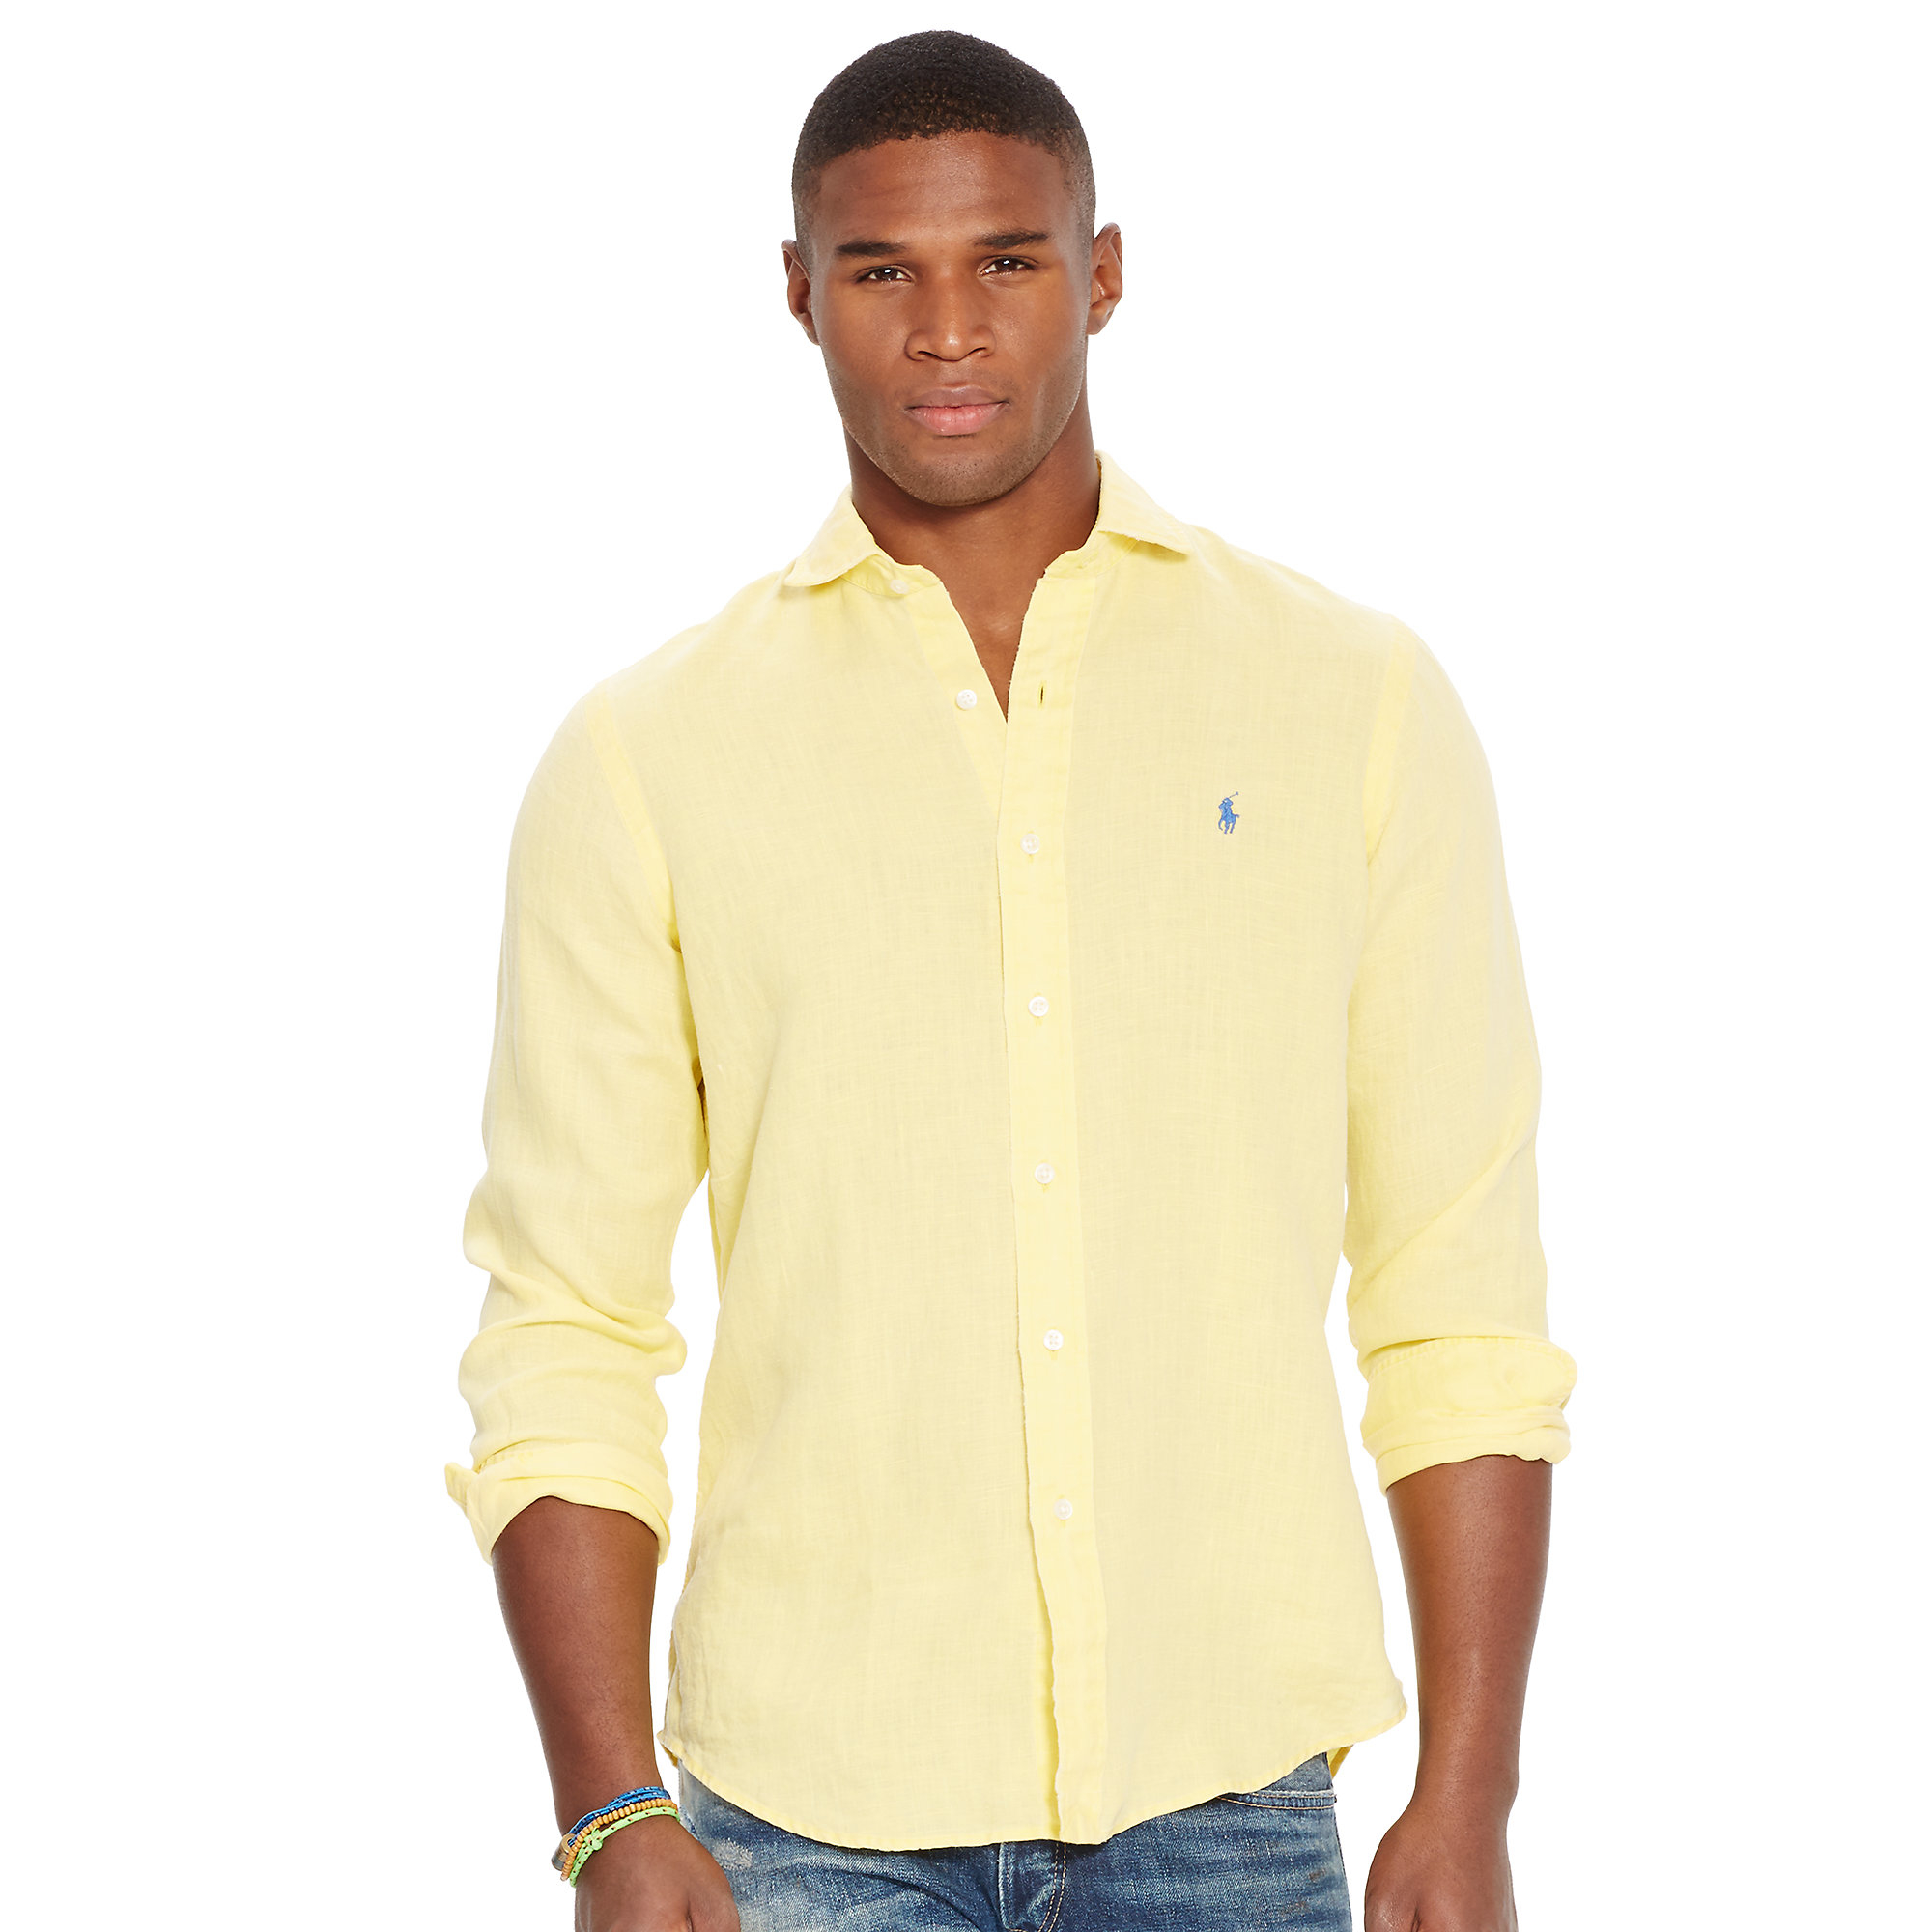 37ede0689230 Lyst - Polo Ralph Lauren Slim Fit Shirt in Yellow for Men